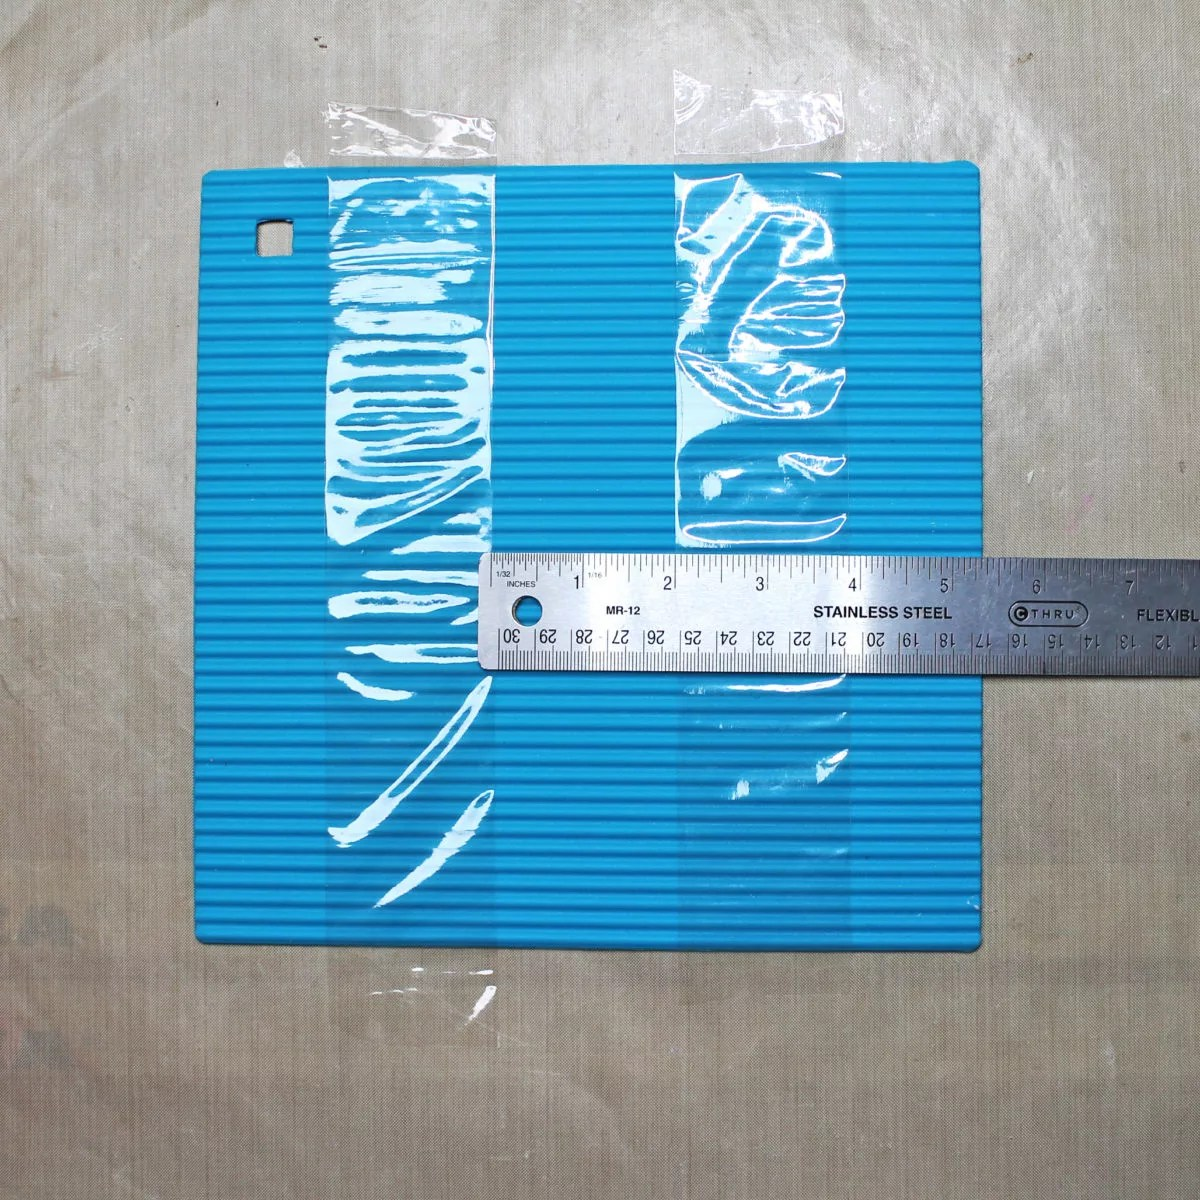 tape applied to silicone mat